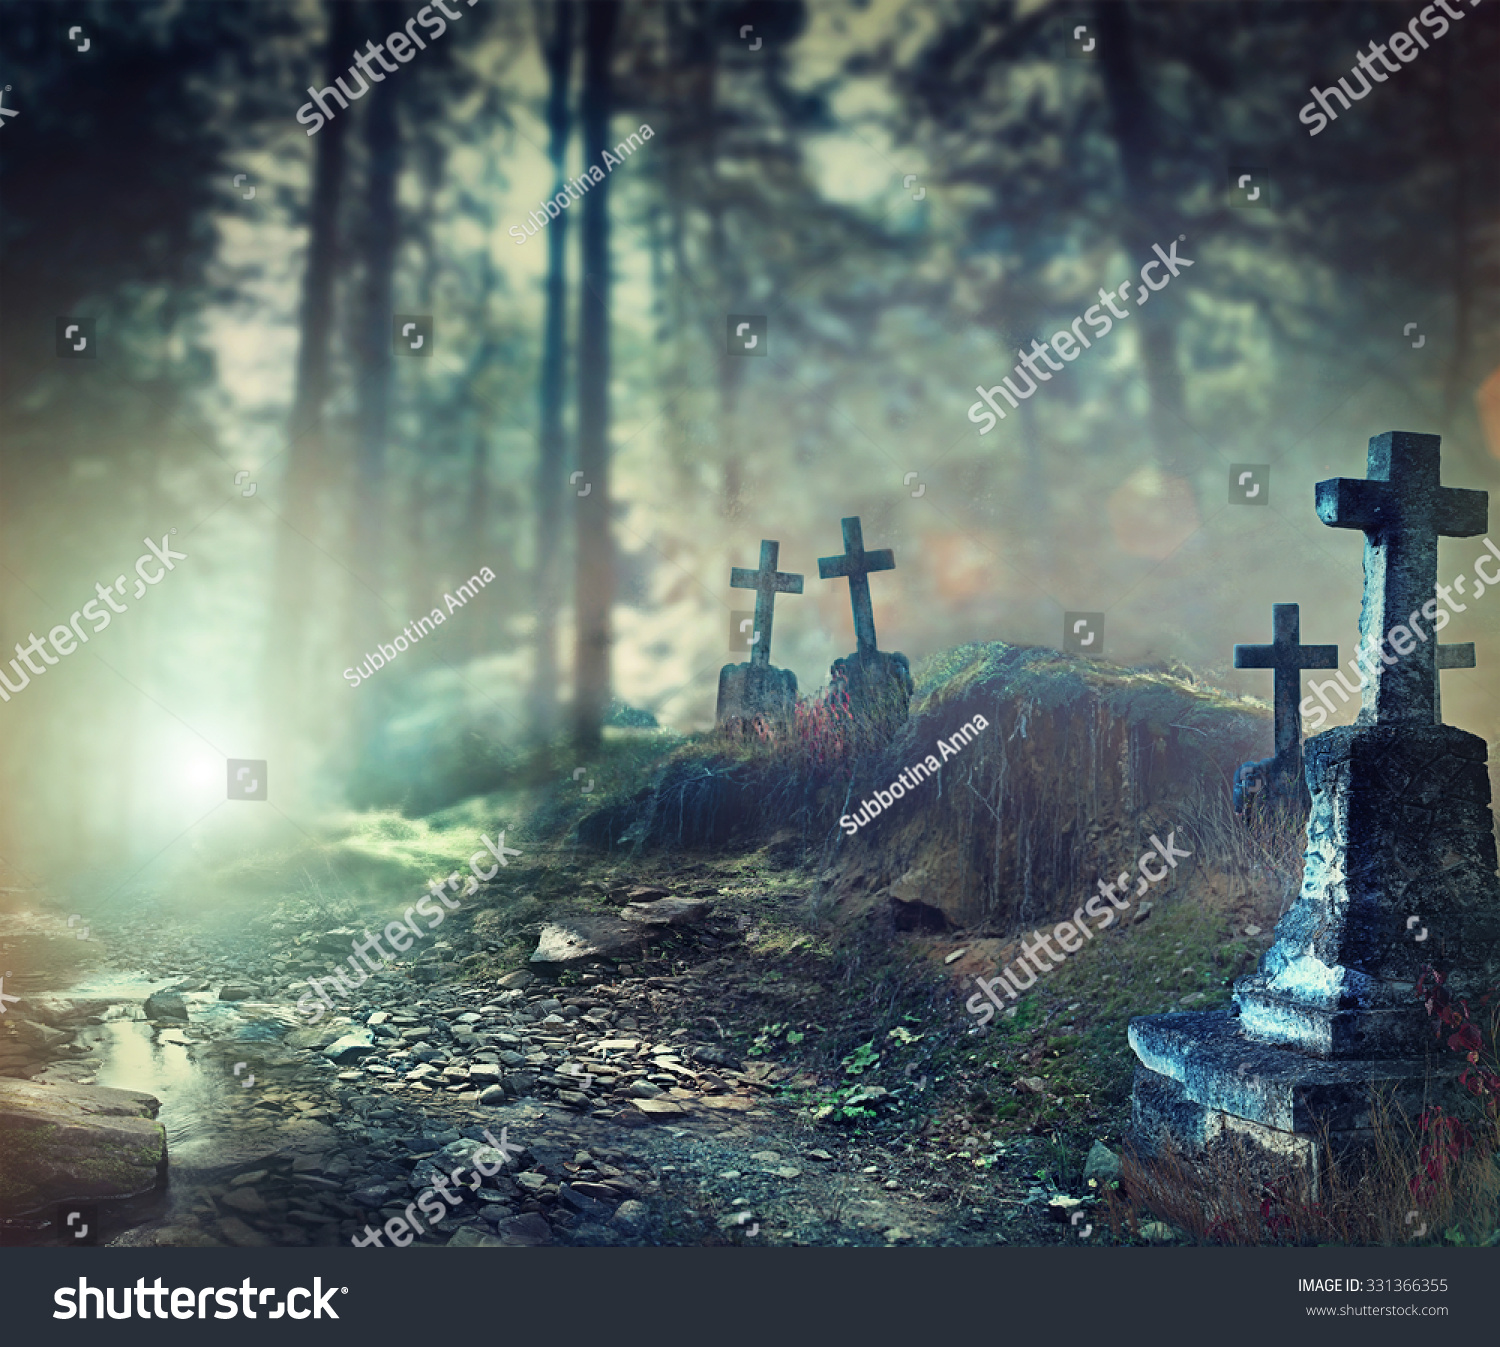 Halloween Art Design Background Foggy Graveyard At Night Old Spooky Cemetery In Moonlight Through